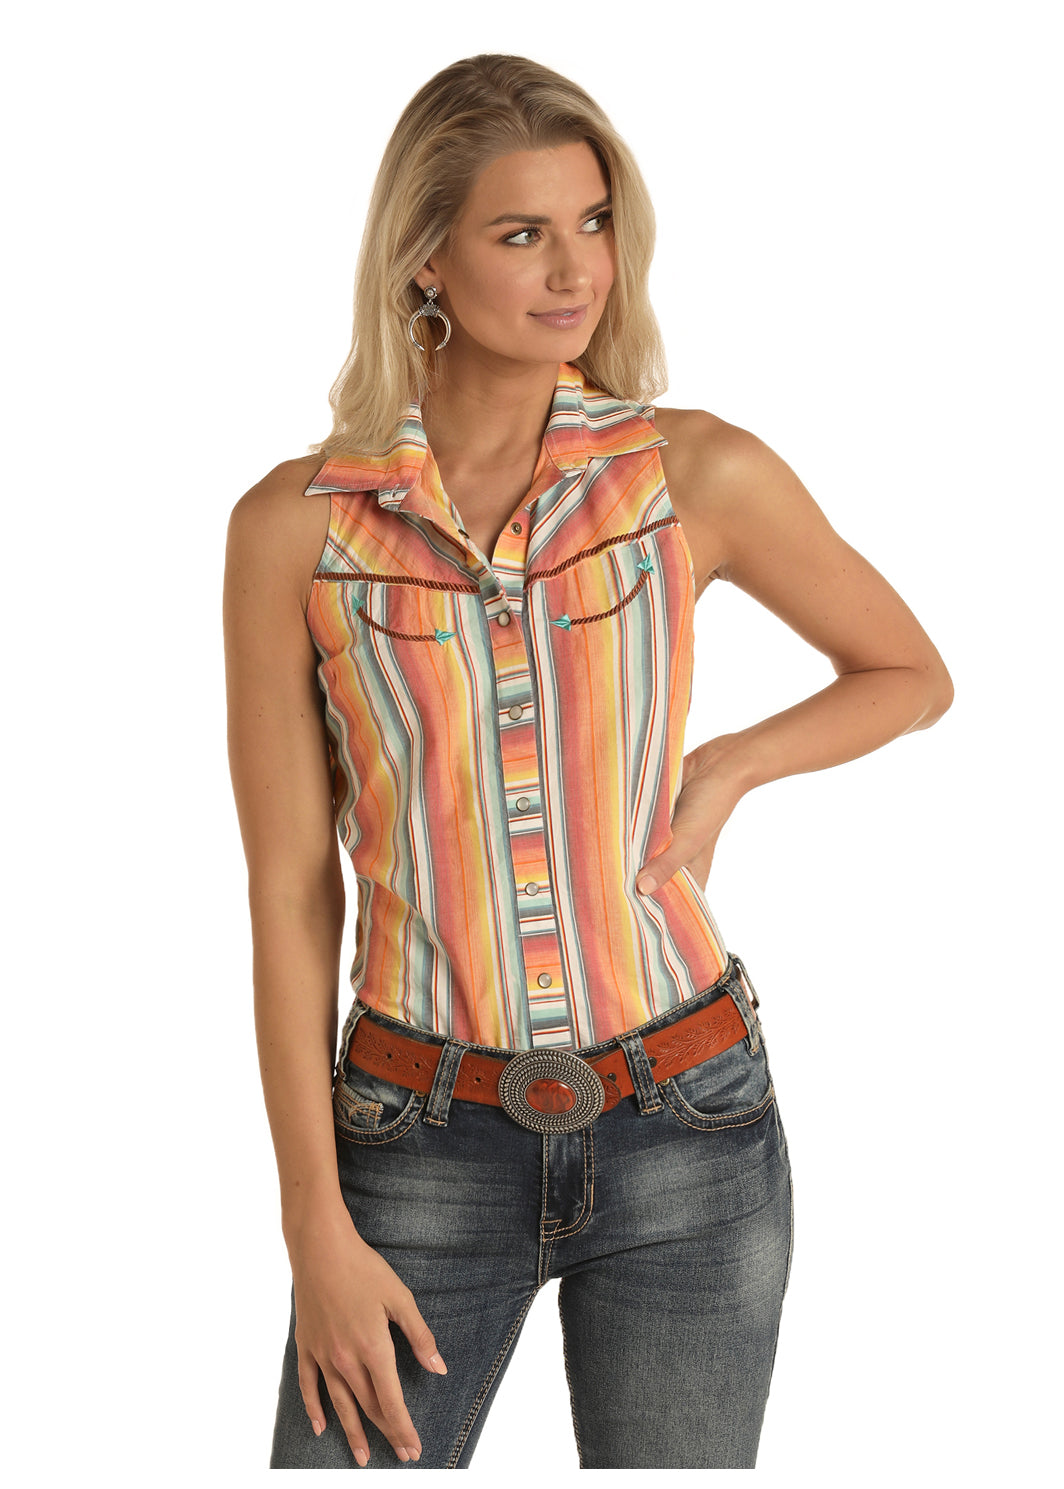 Panhandle Women's Serape Top